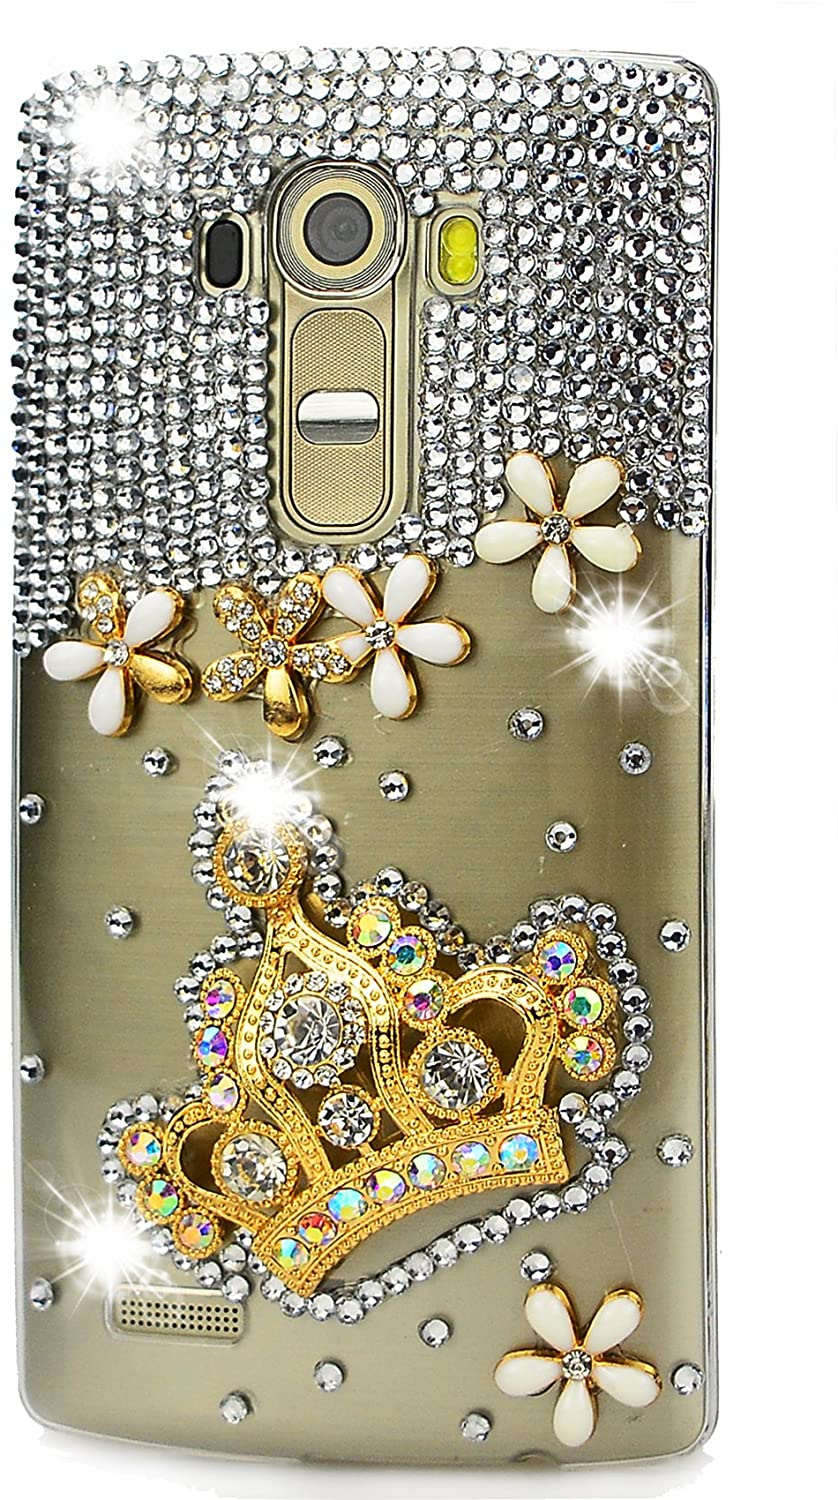 STENES 3D Handmade Sparkly Rhinestone Crystal Case for Huawei Mate 10 Pro - 10